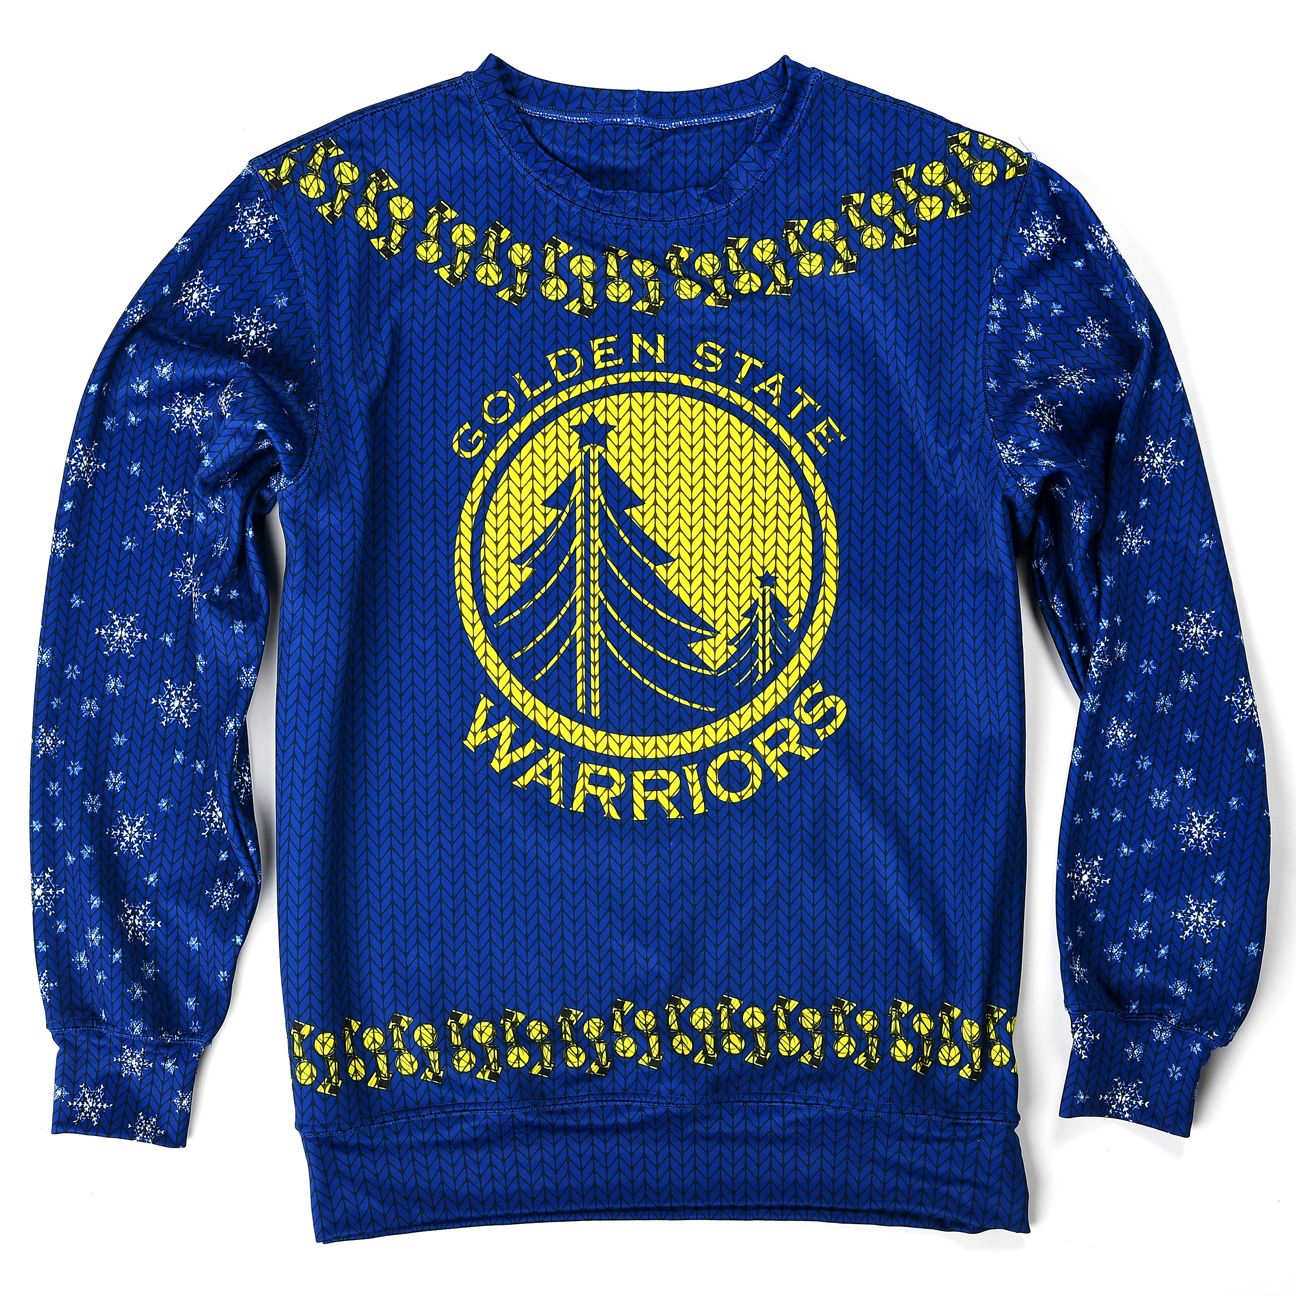 Warriors ugly sweater